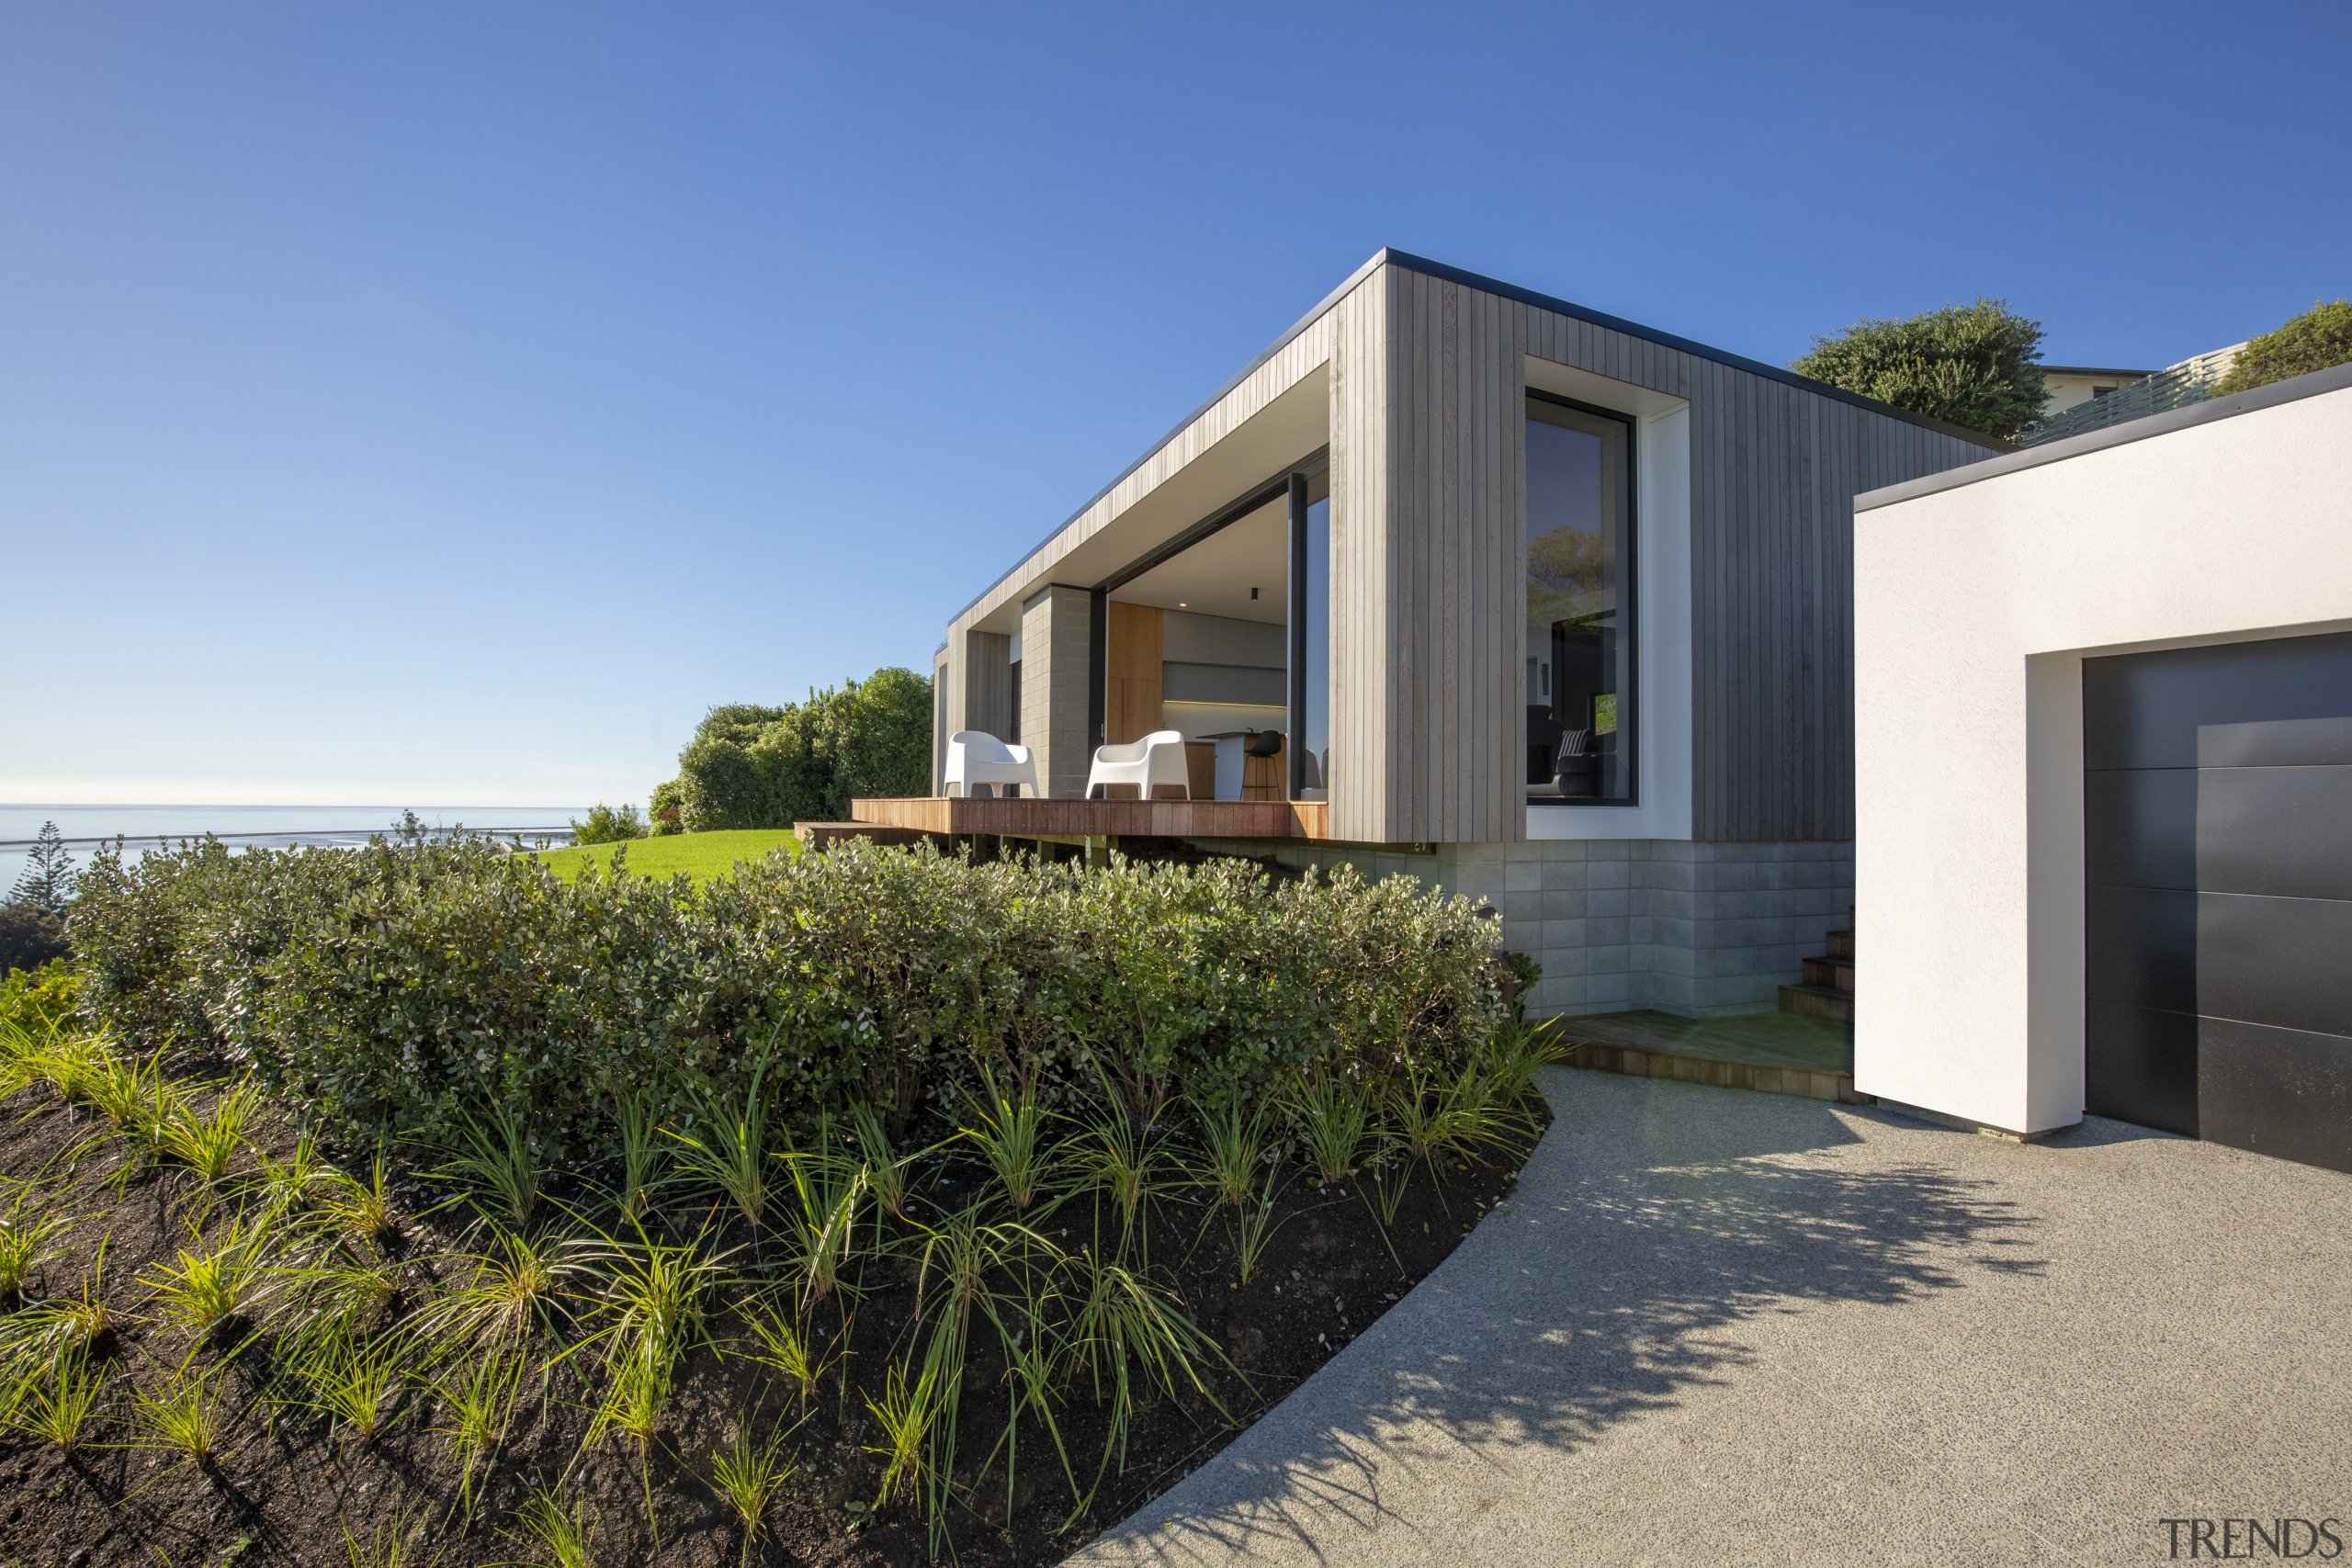 The siting of the house was a balancing architecture, cottage, estate, facade, home, house, property, real estate, villa, teal